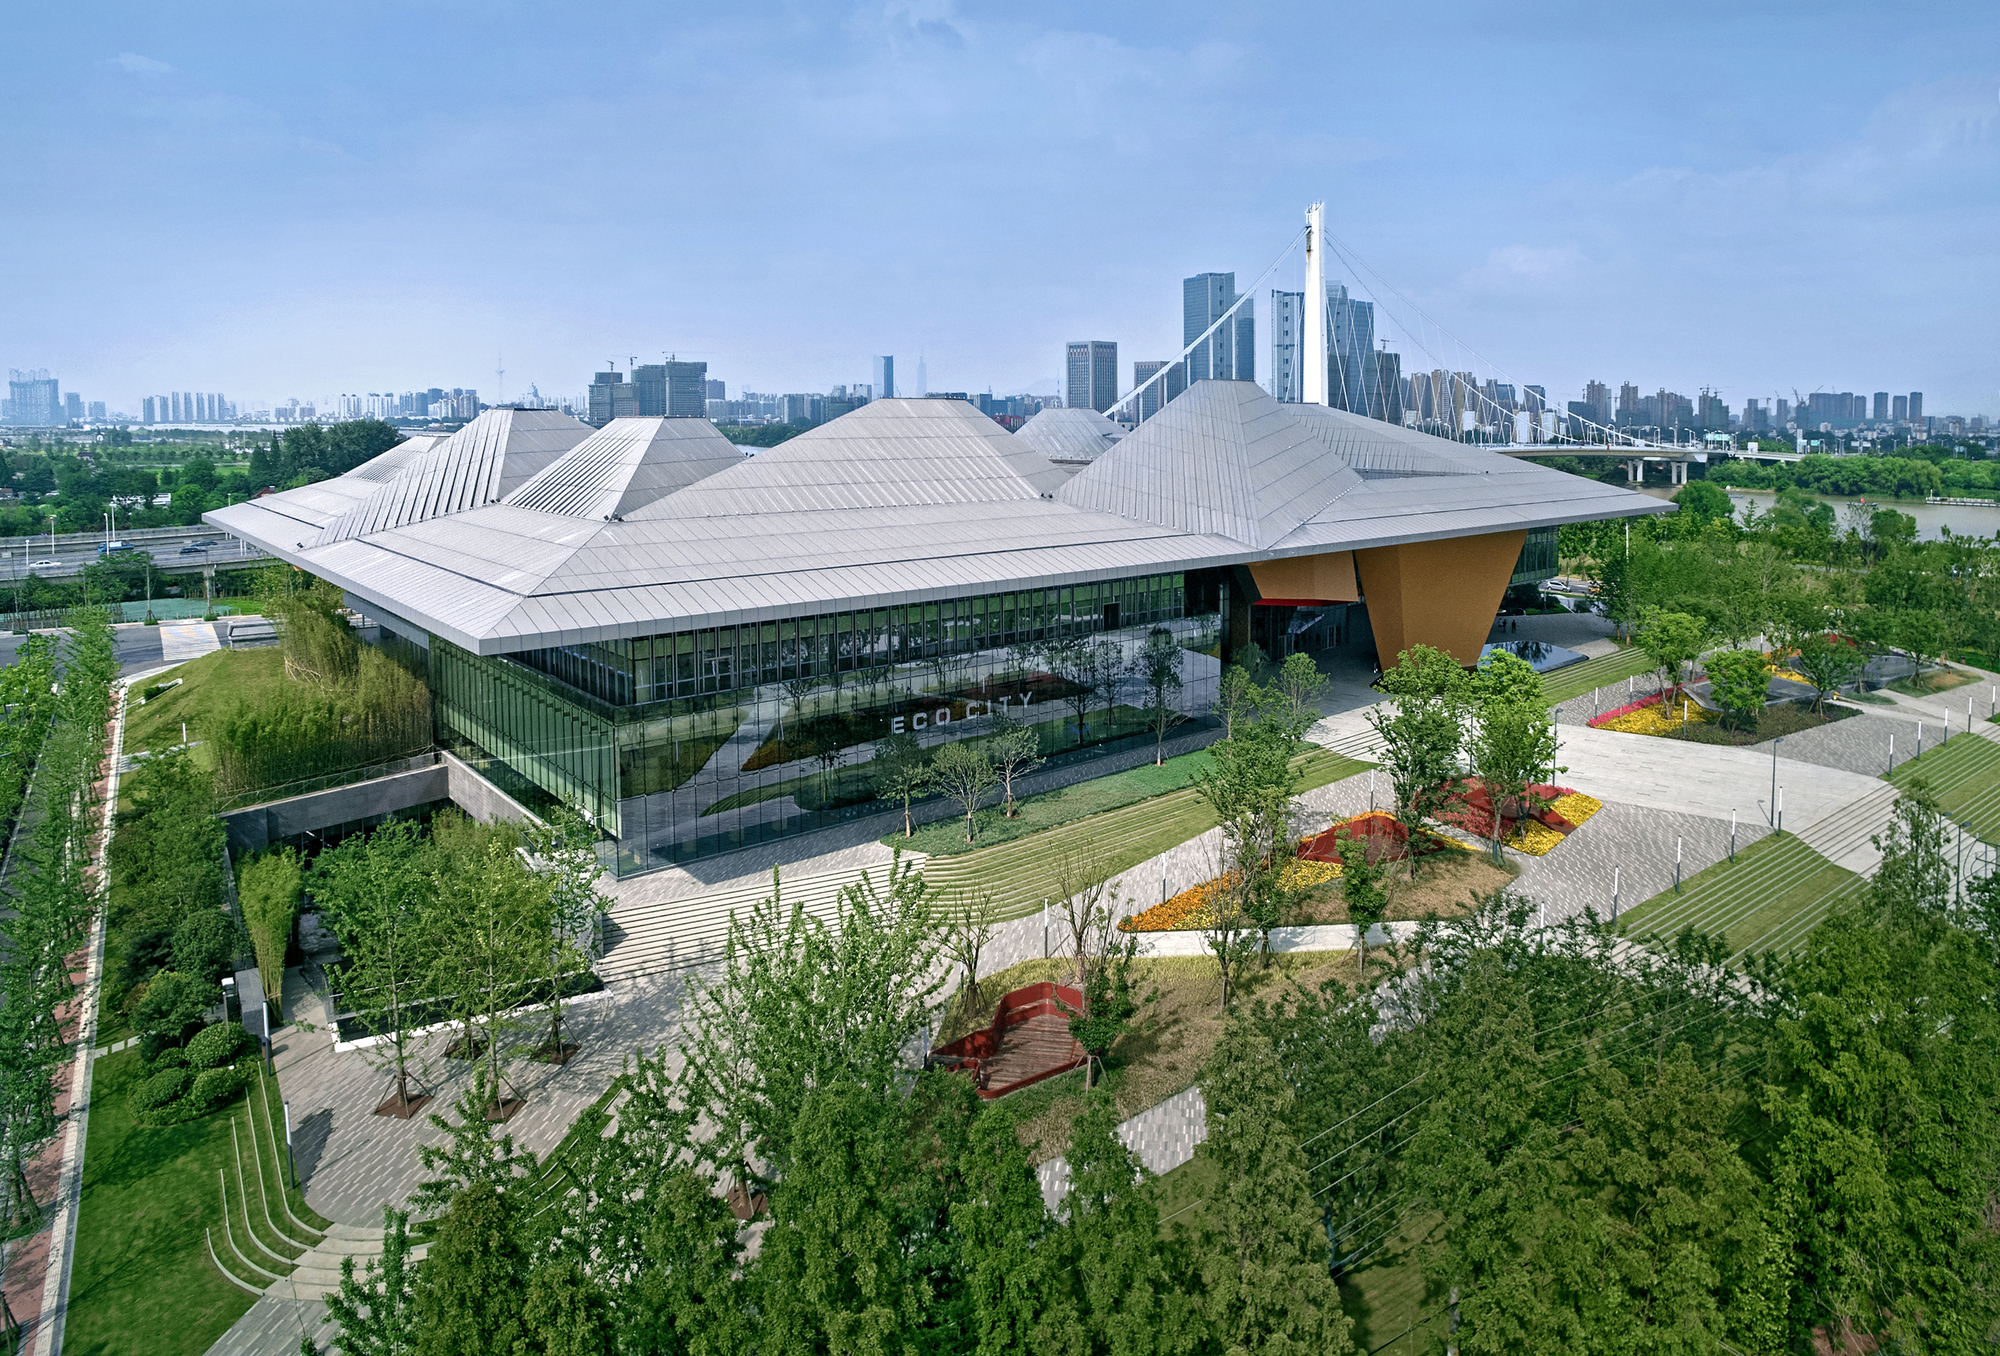 Nanjing Eco Tech Island Exhibition Center Nbbj Jiangsu